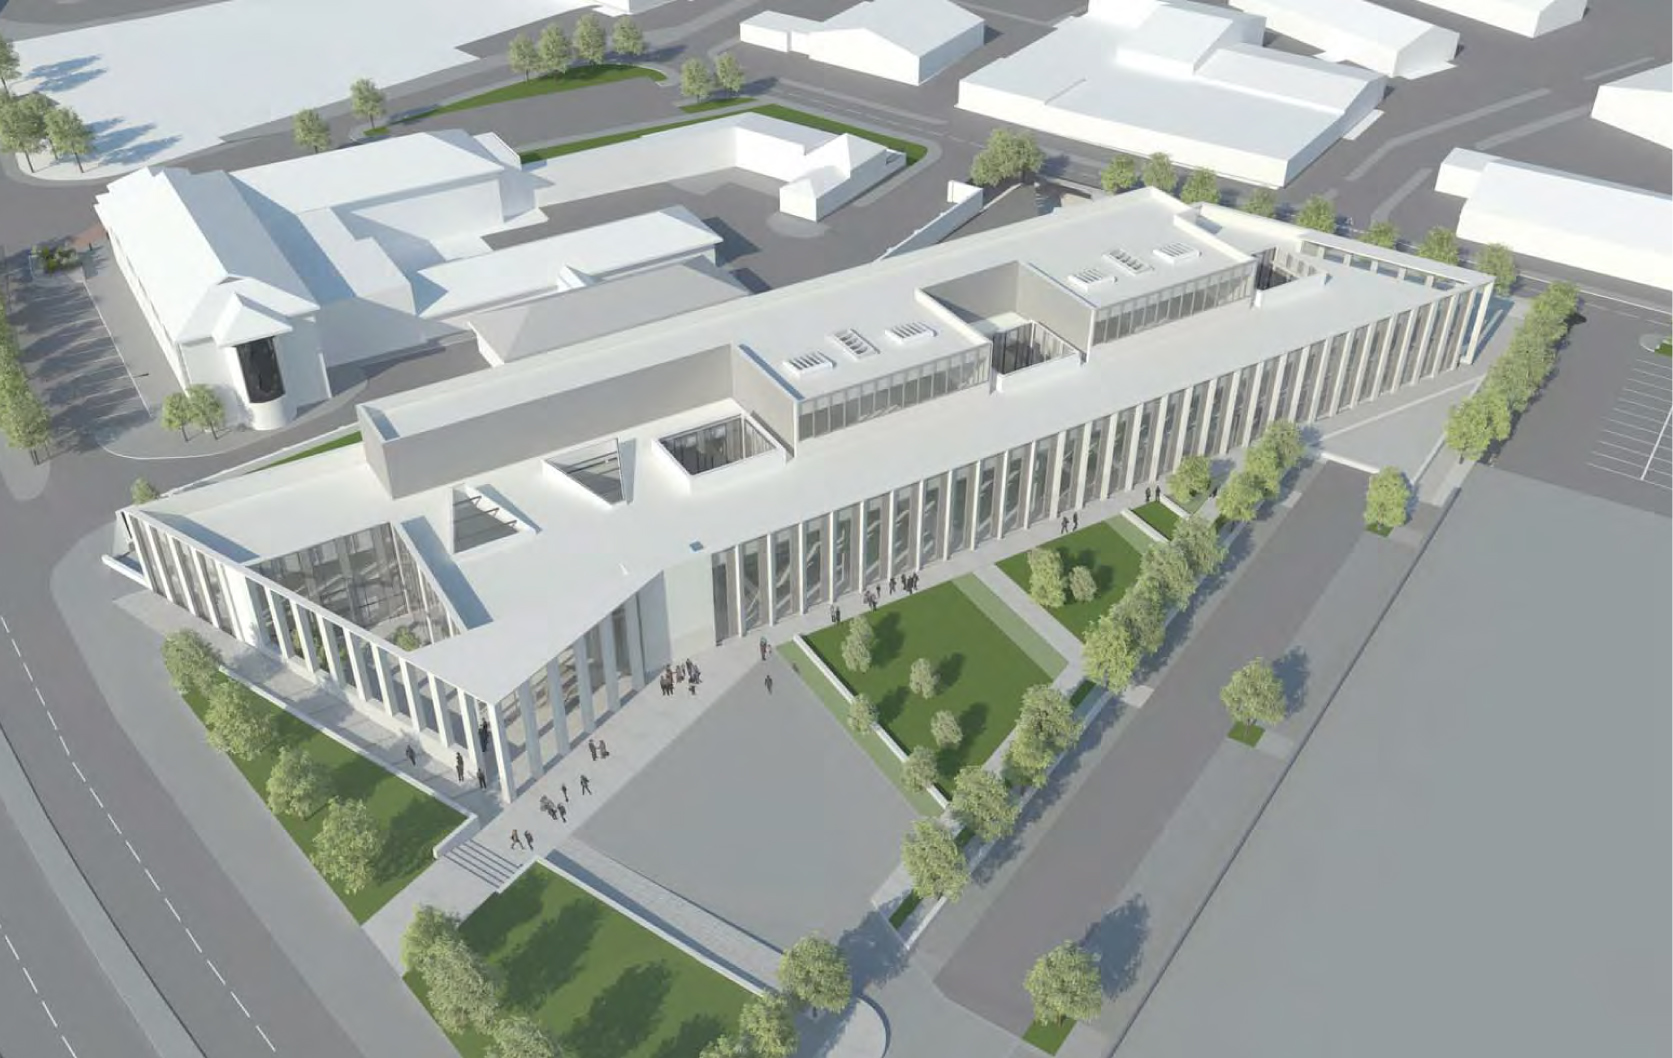 The new Inverness Justice Centre is taking shape - and we now need a commitment to something similar here.